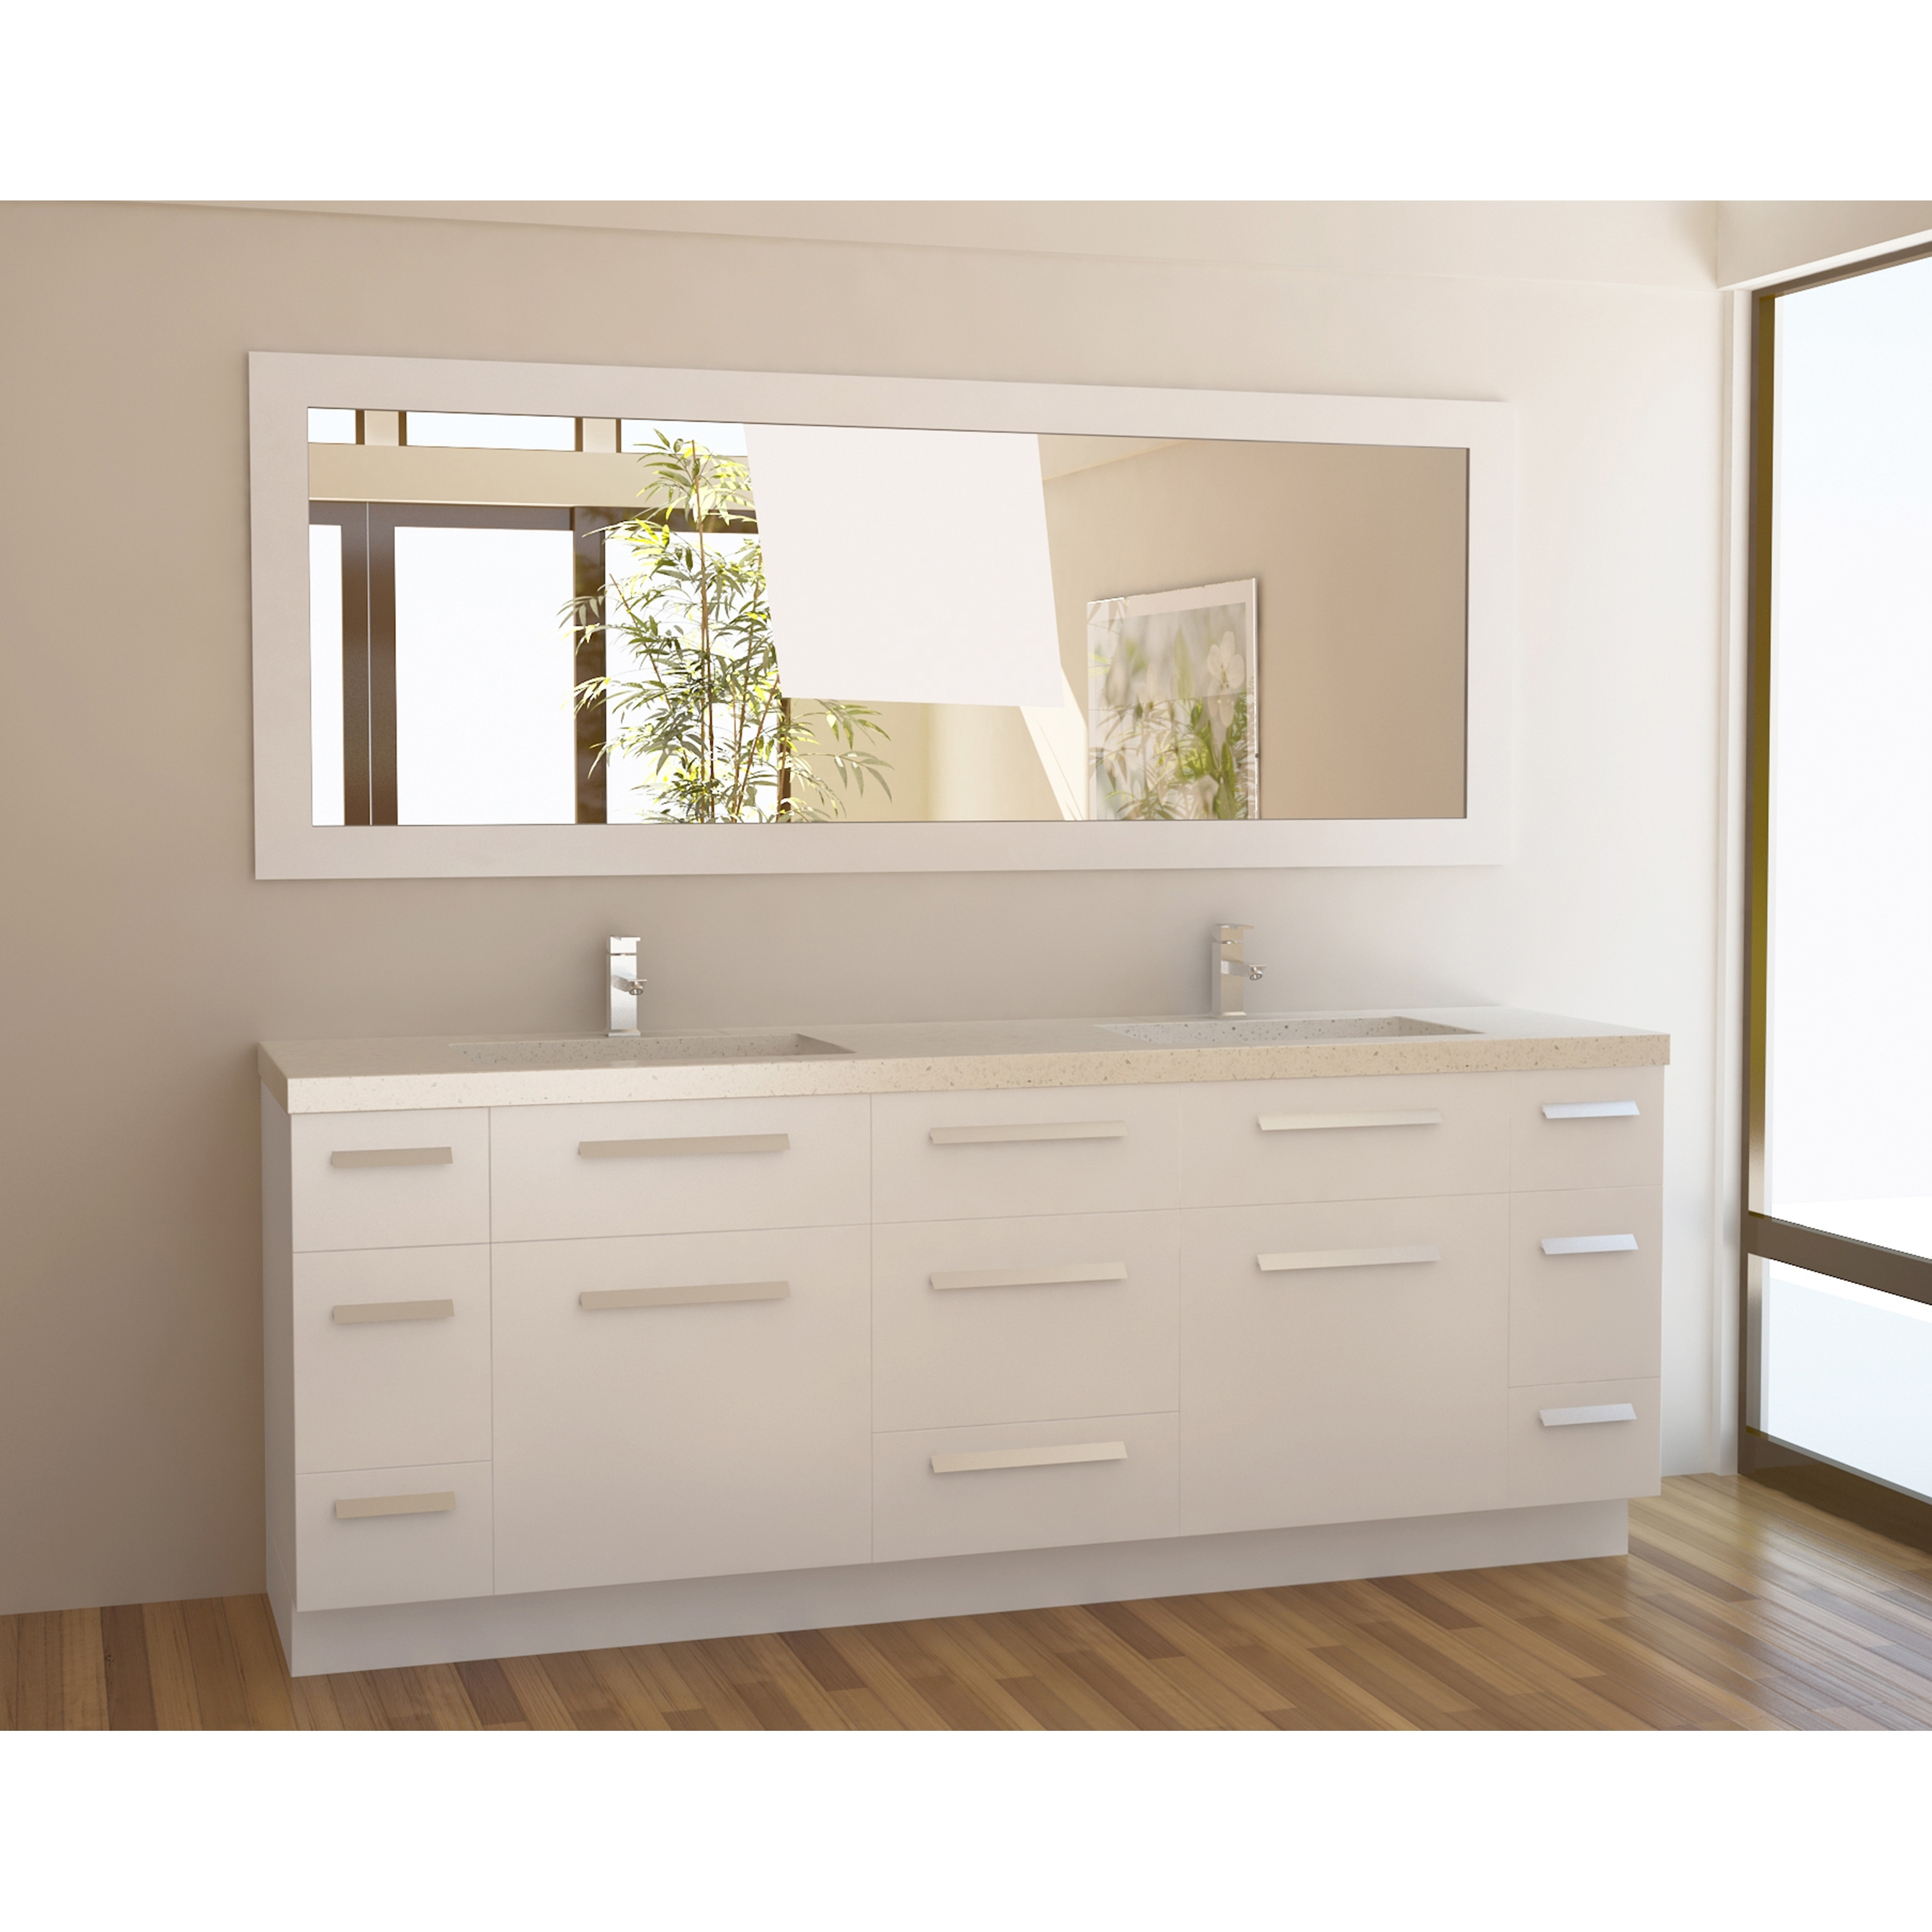 84 Inch Bathroom Vanity Single Sink84 inch bathroom vanity the variants homesfeed